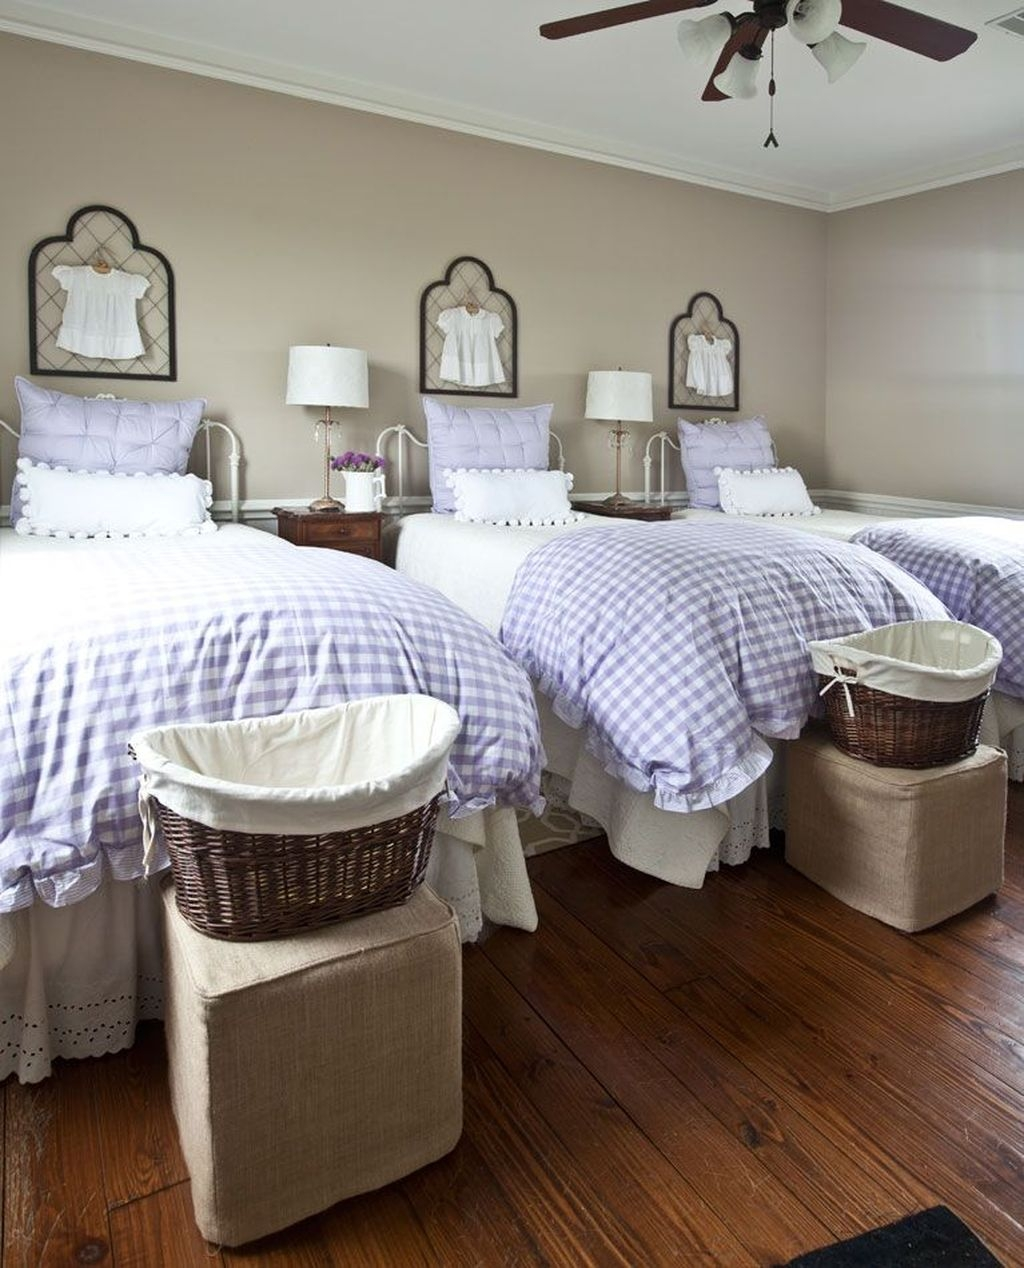 Amazing Farmhouse Style For Cozy Bedroom Decorating Ideas29